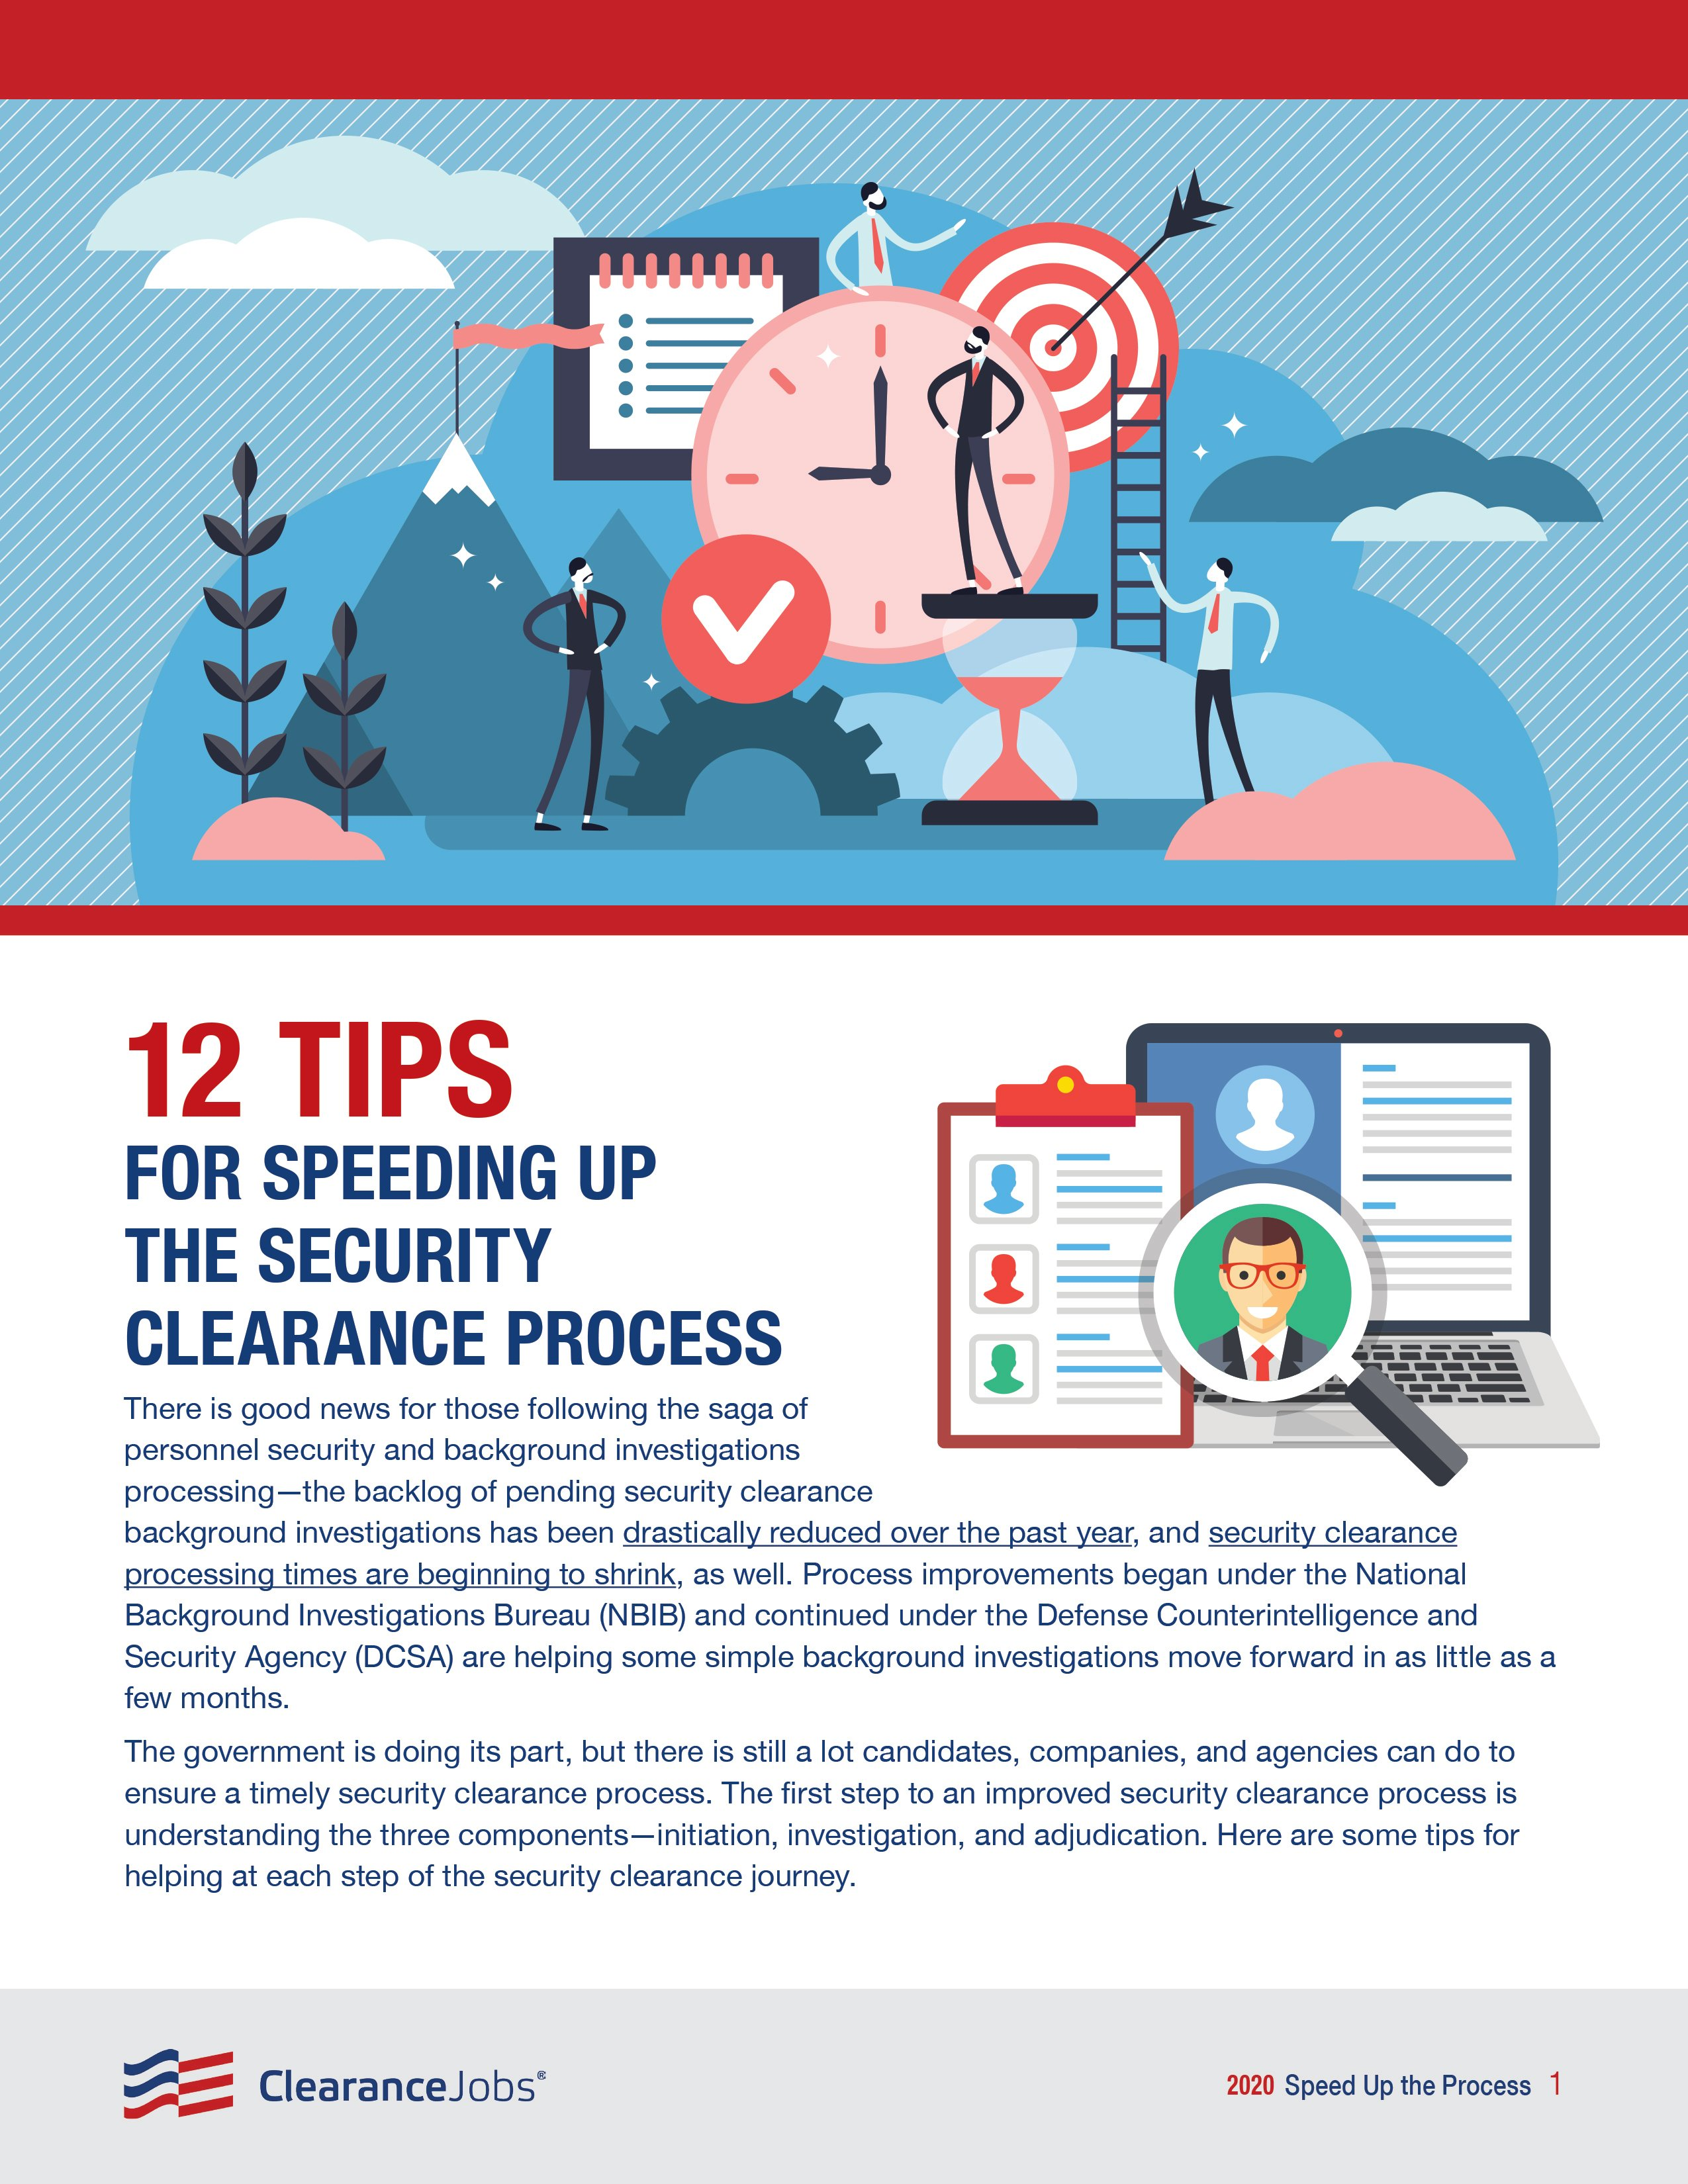 12 Tips_Speed-Up-The-Security-Clearance-Process-1